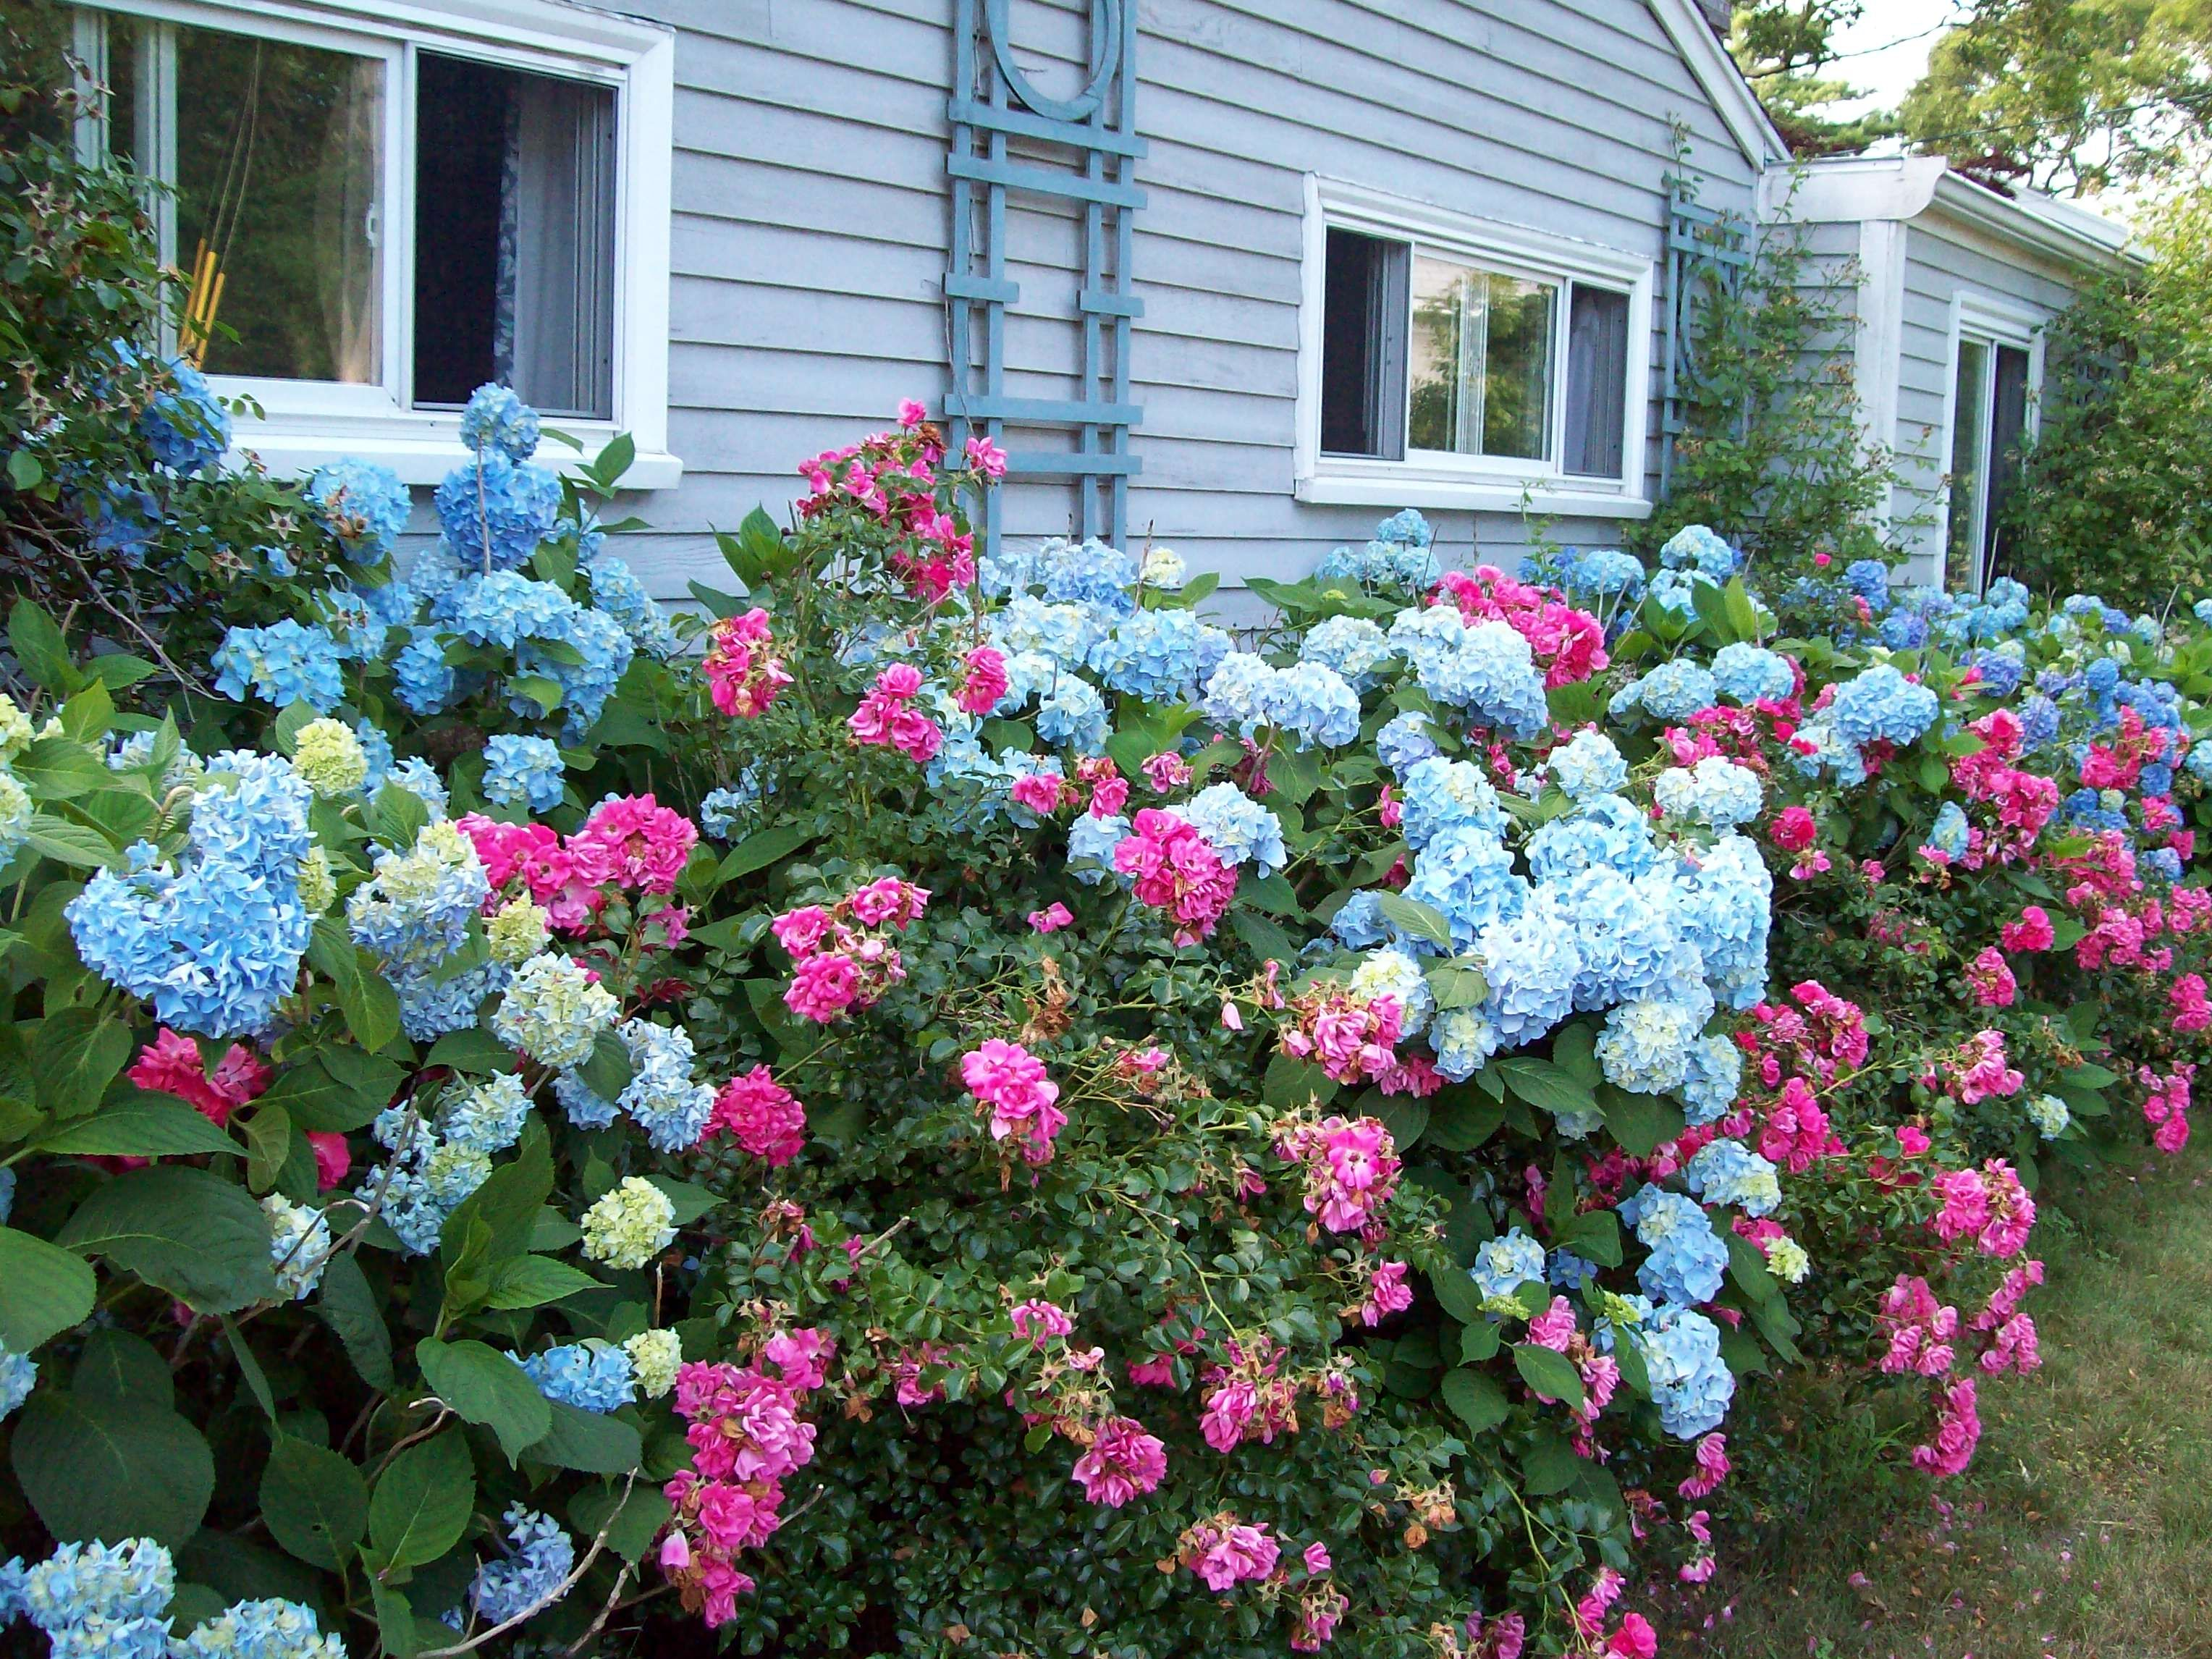 Pin By Sherry On Garden Shrubs And Trees Landscaping With Roses Rose Garden Landscape Front Yard Hydrangea